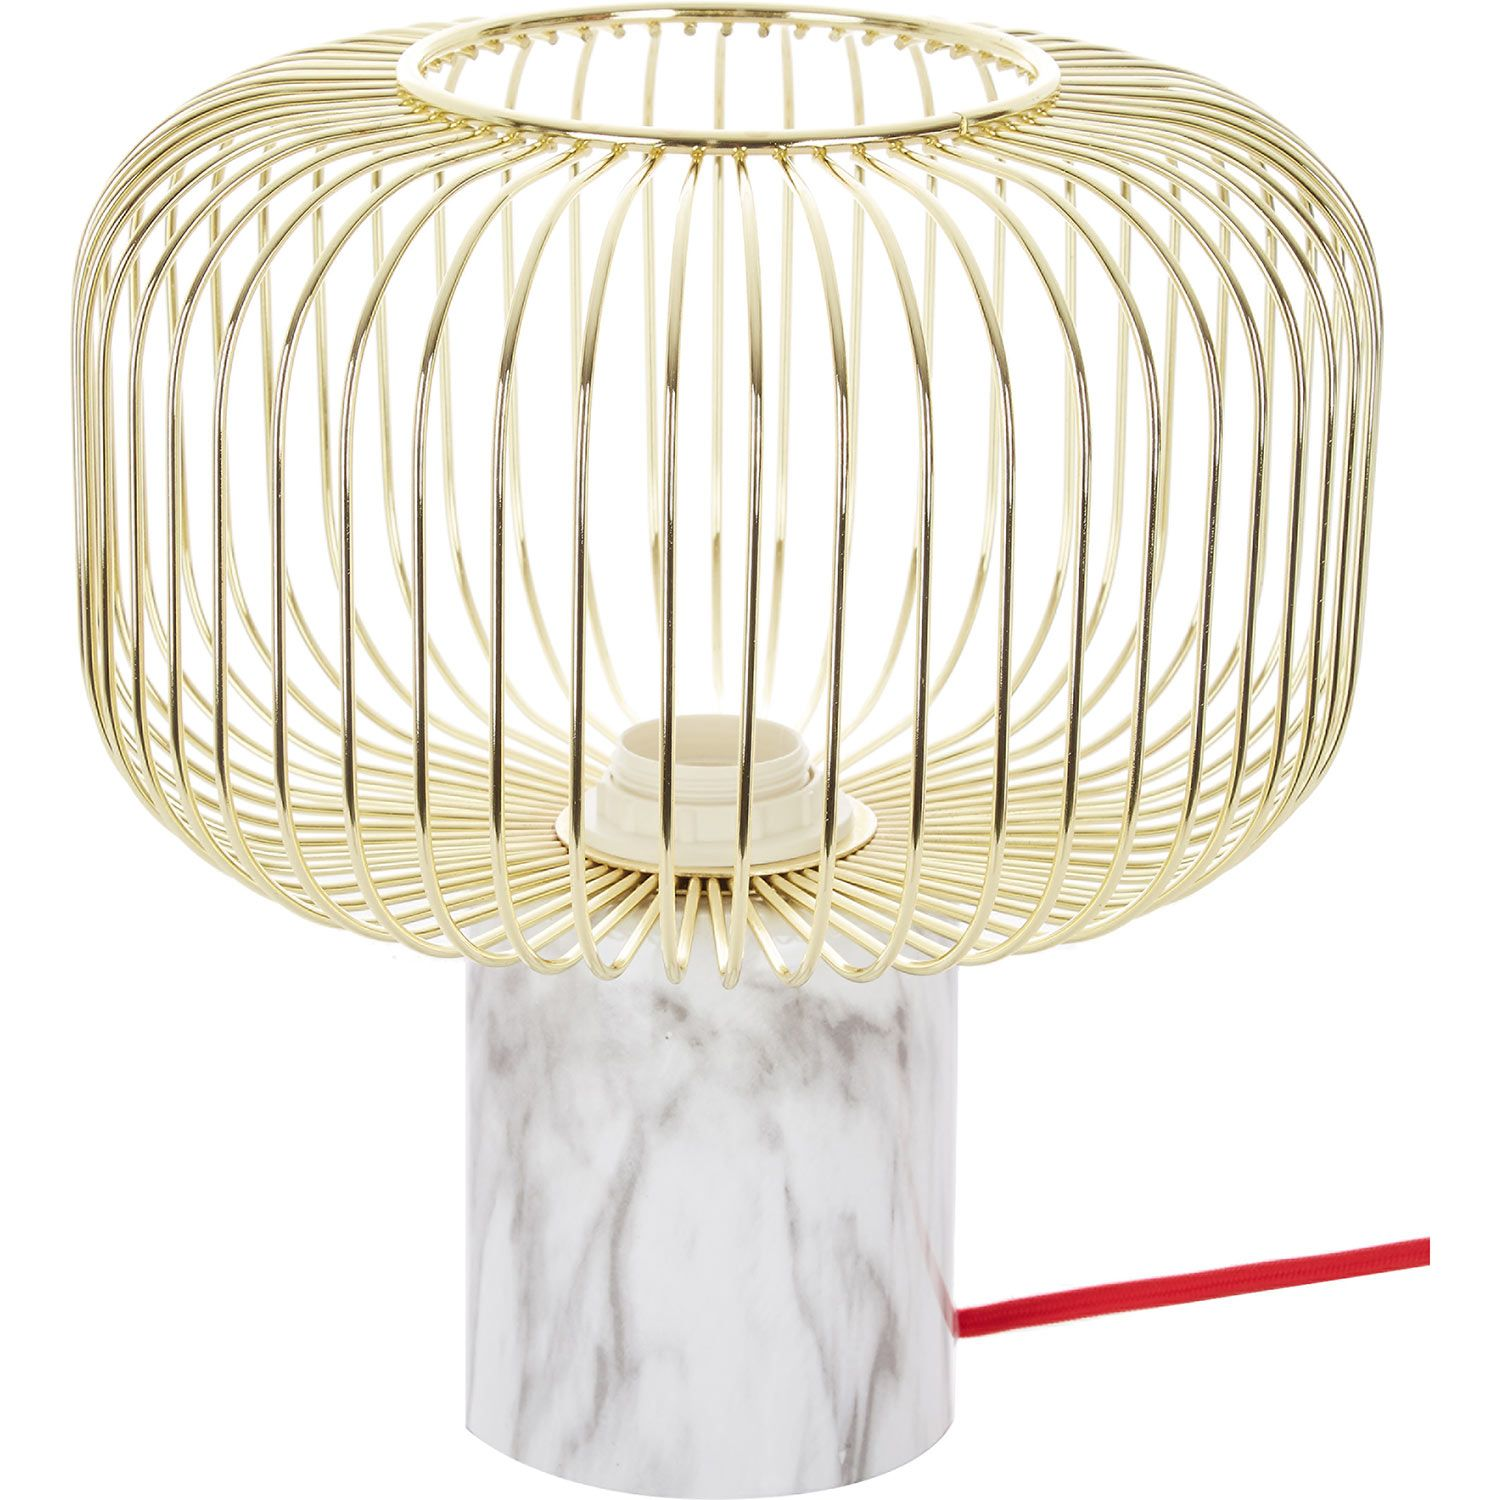 Wired & Marble Effect Lamp - TK Maxx